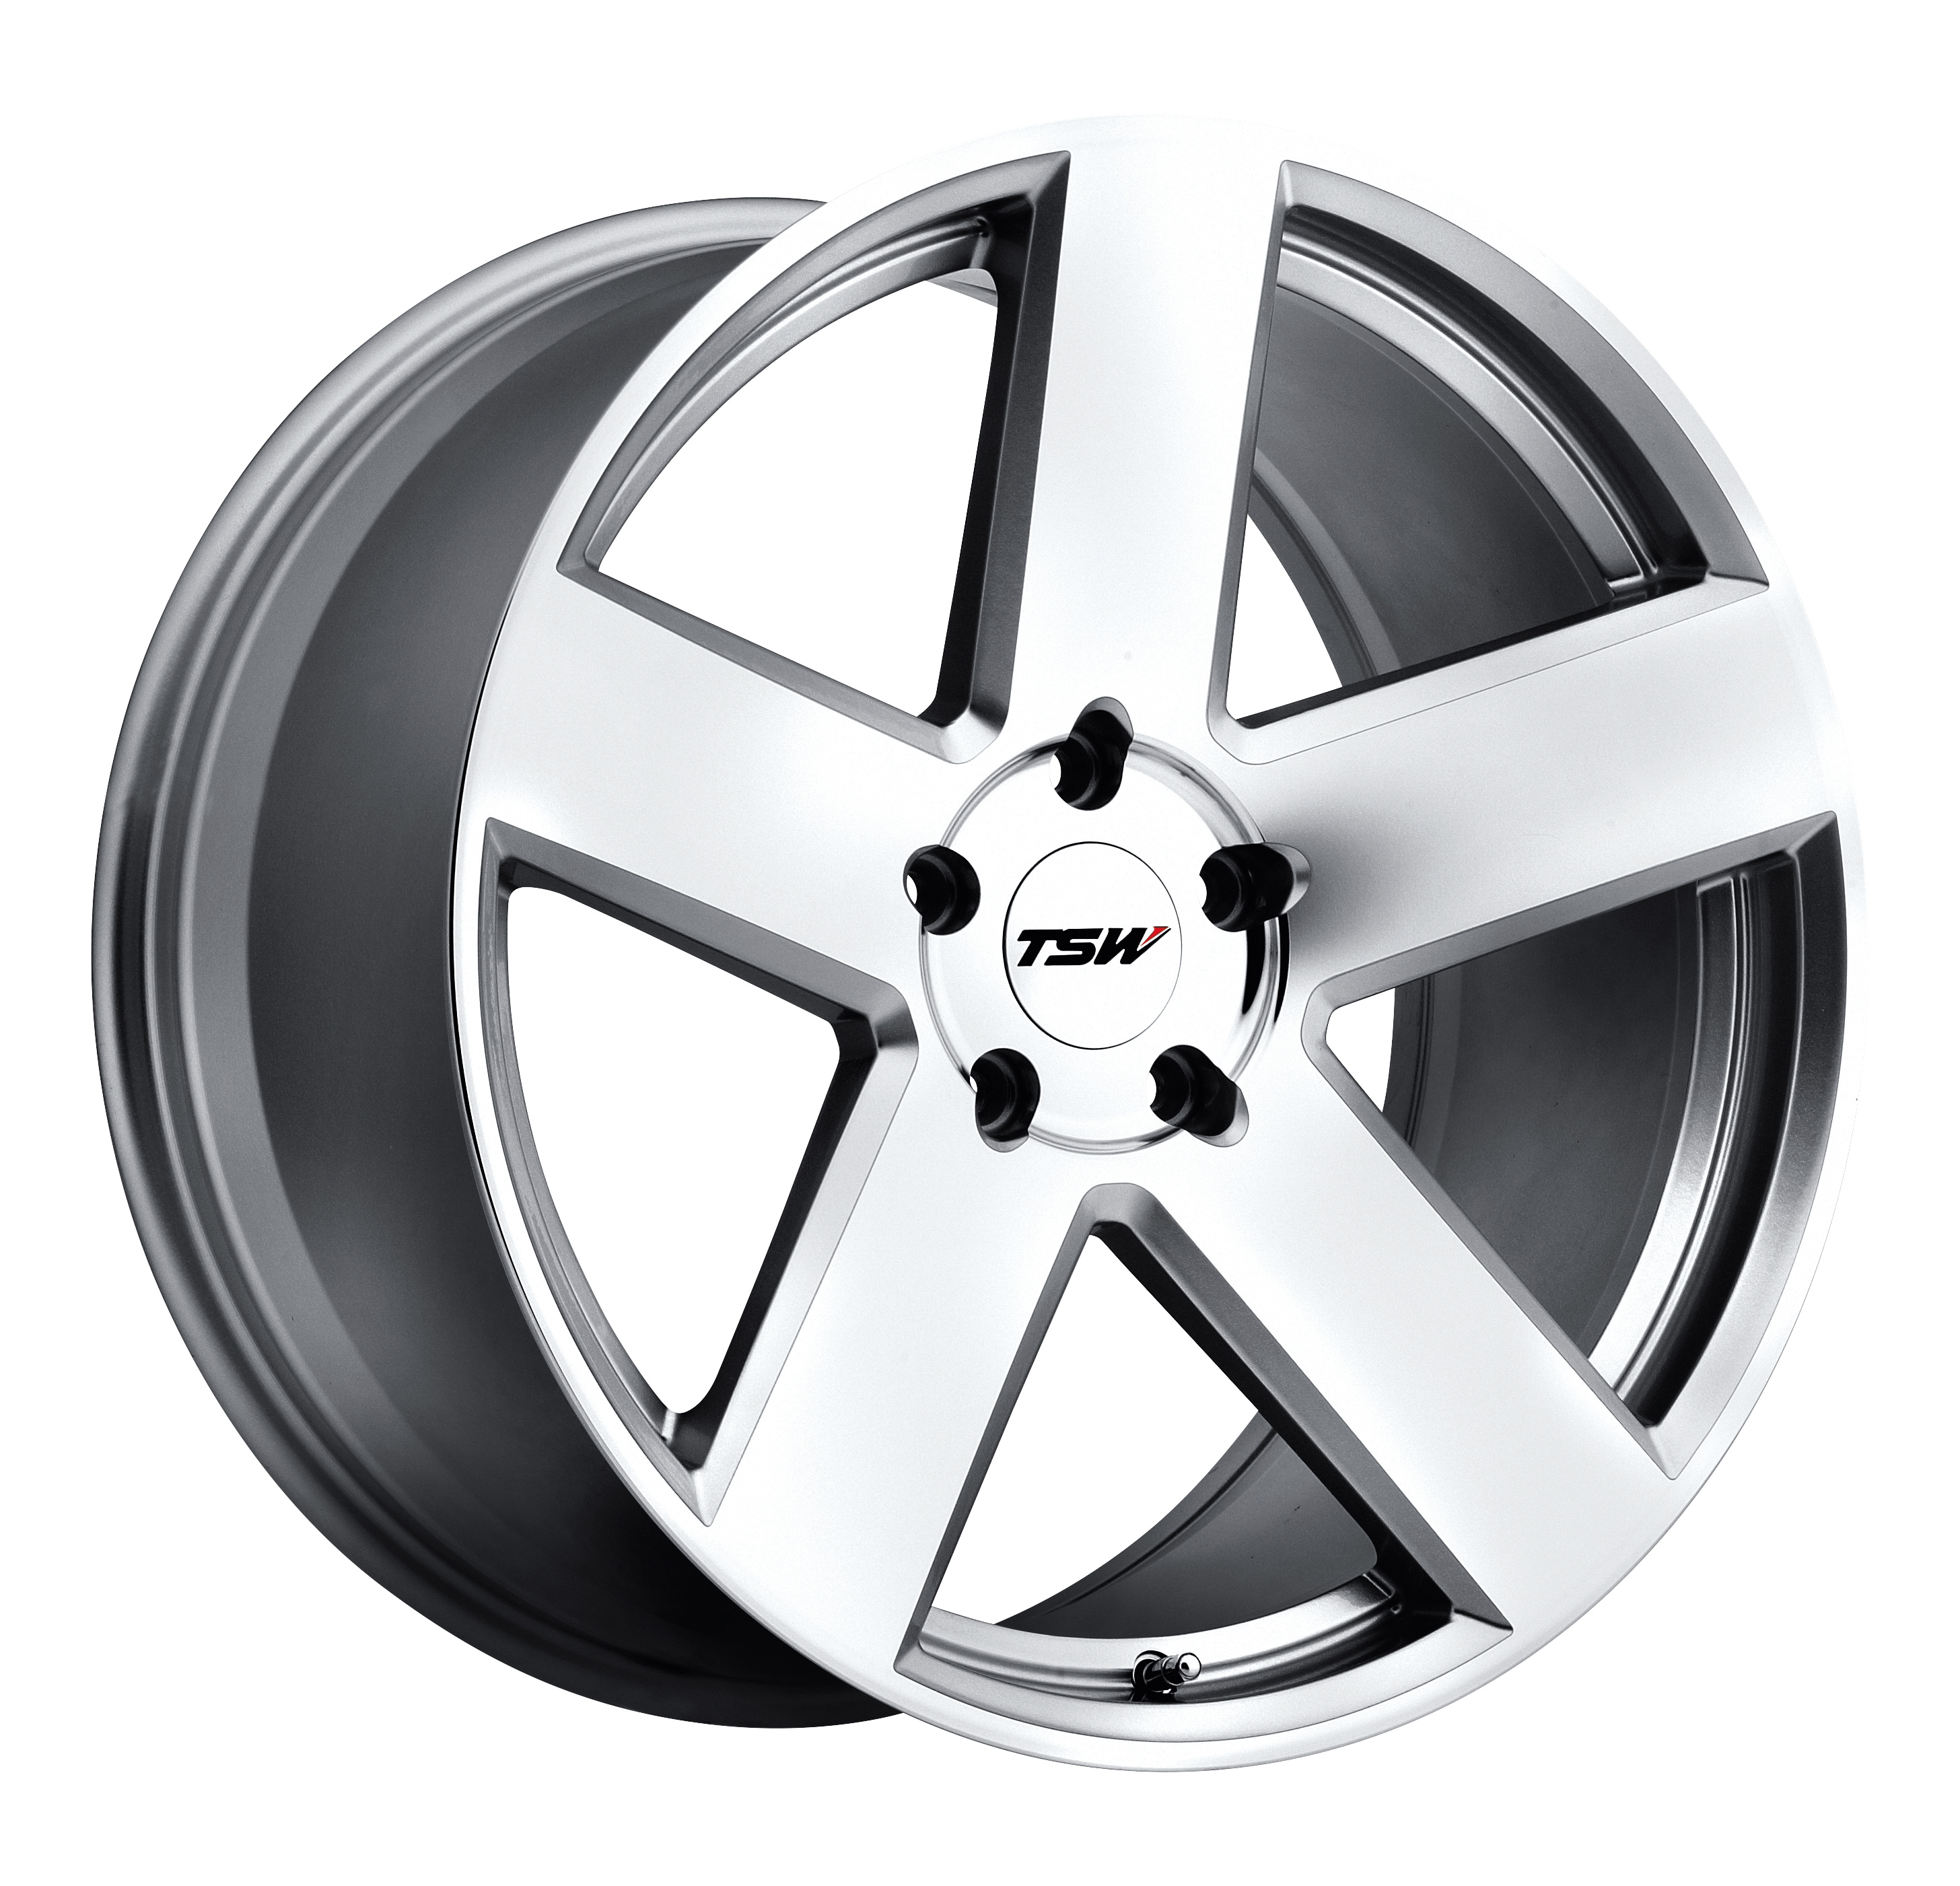 BRISTOL  WHEELS AND RIMS PACKAGES